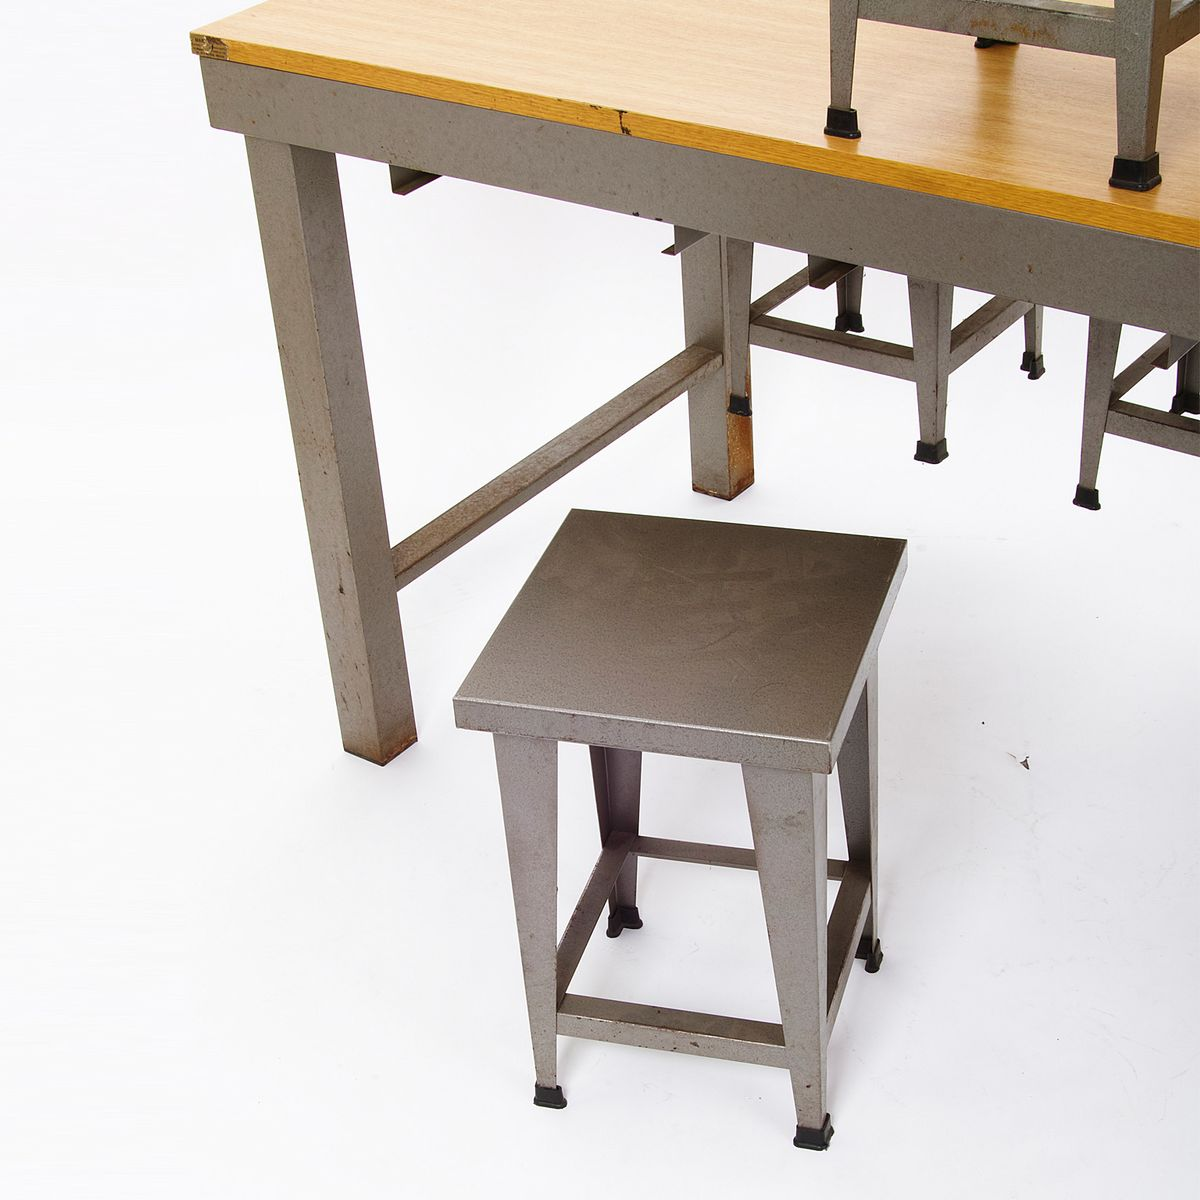 Vintage Industrial Style Vintage Industrial Style Table With Stools For Sale At Pamono